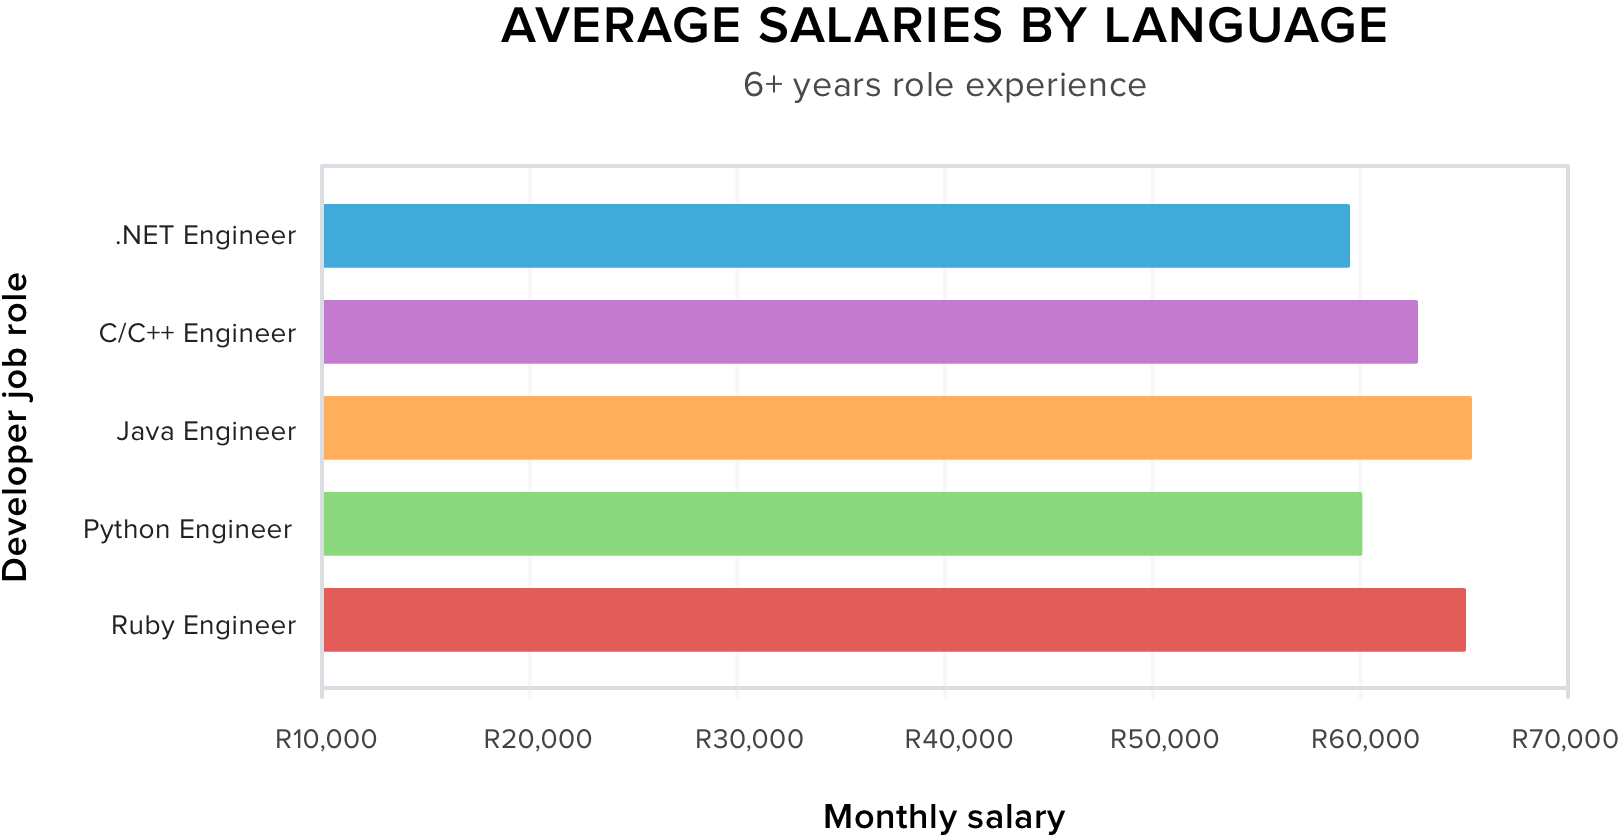 Average Salaries by Language 6+ Years Role Experience